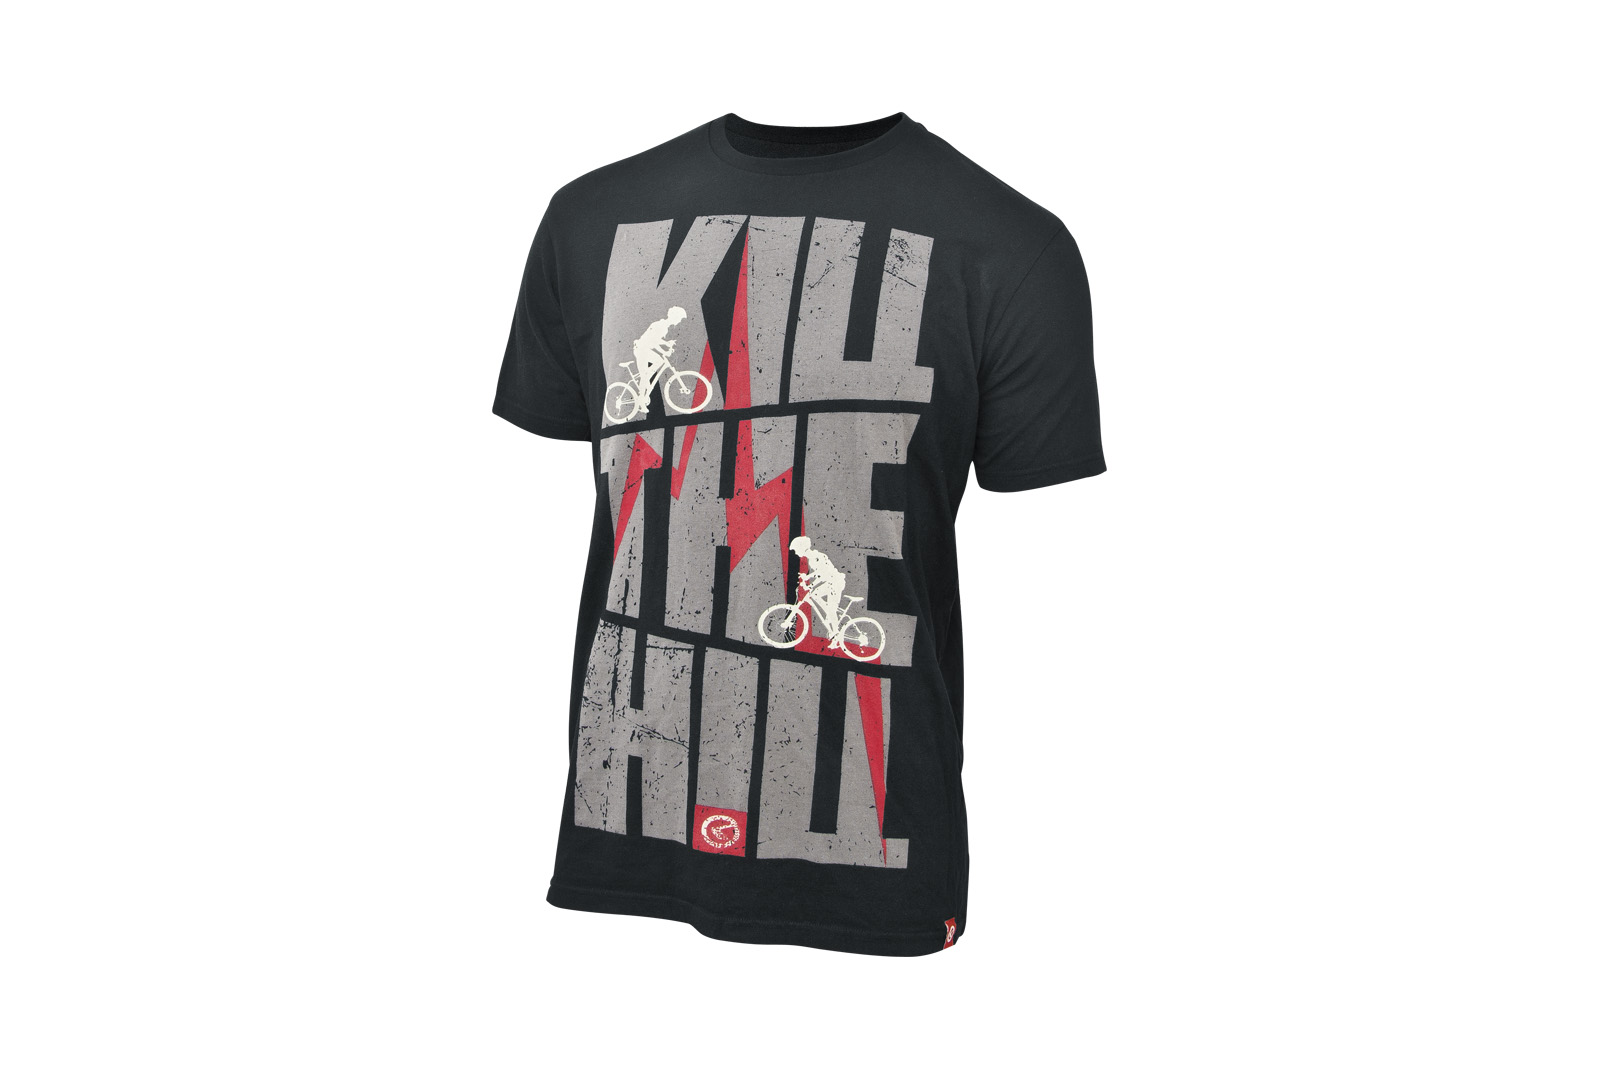 T-Shirt KELLYS KILL THE HILL kurzarm black - M - Fahrradhaus Haske